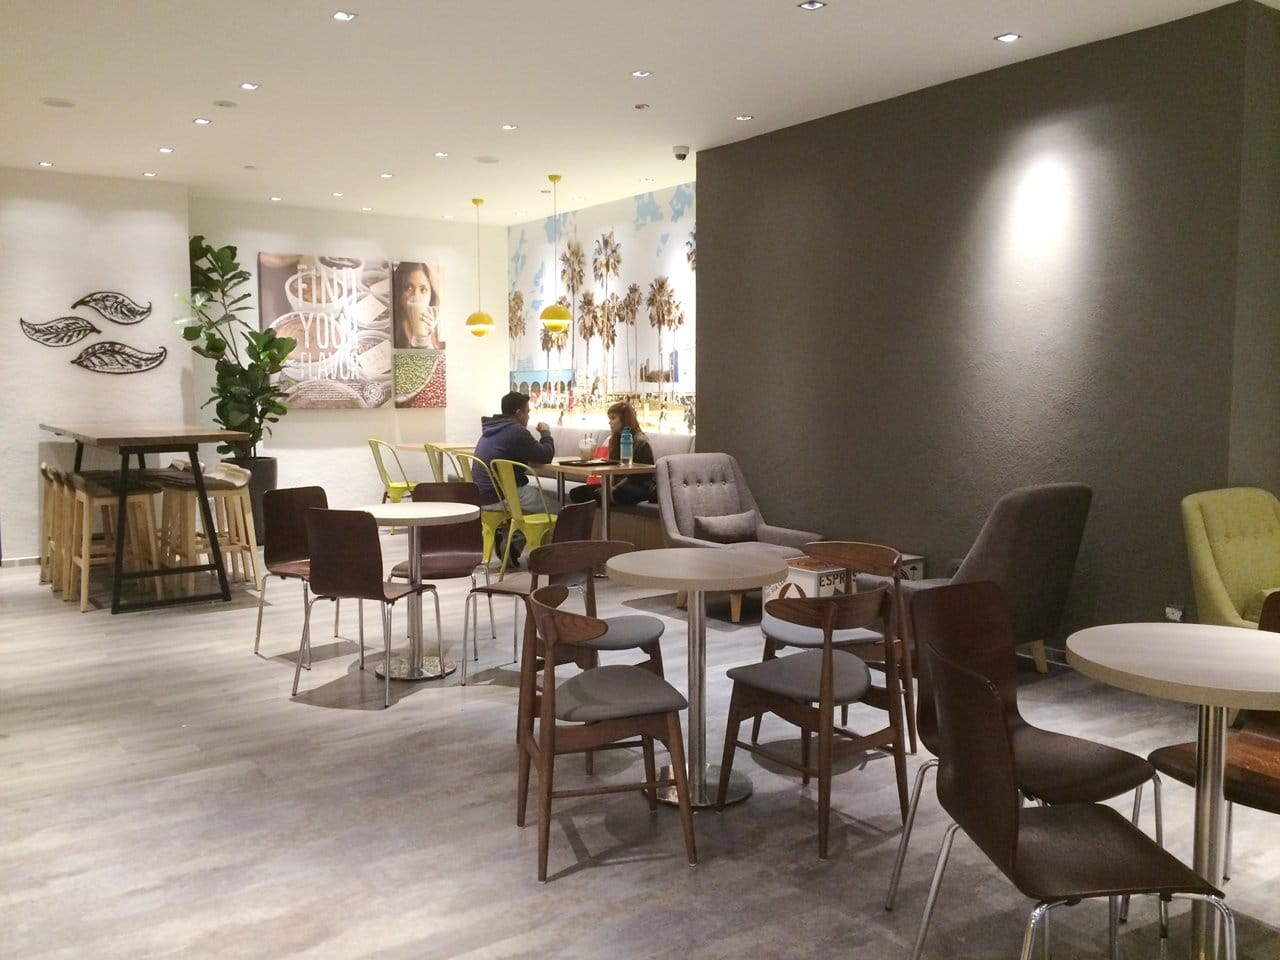 Coffee Bean - Alexandra Retail Centre (ARC) | Products Seen: [Hanoi Chair, Shannon Barchair – Lowback, Ichiyo 1-Seater Sofa & Customised Laminated Tabletop with Traxtor Round Table Base]<br />